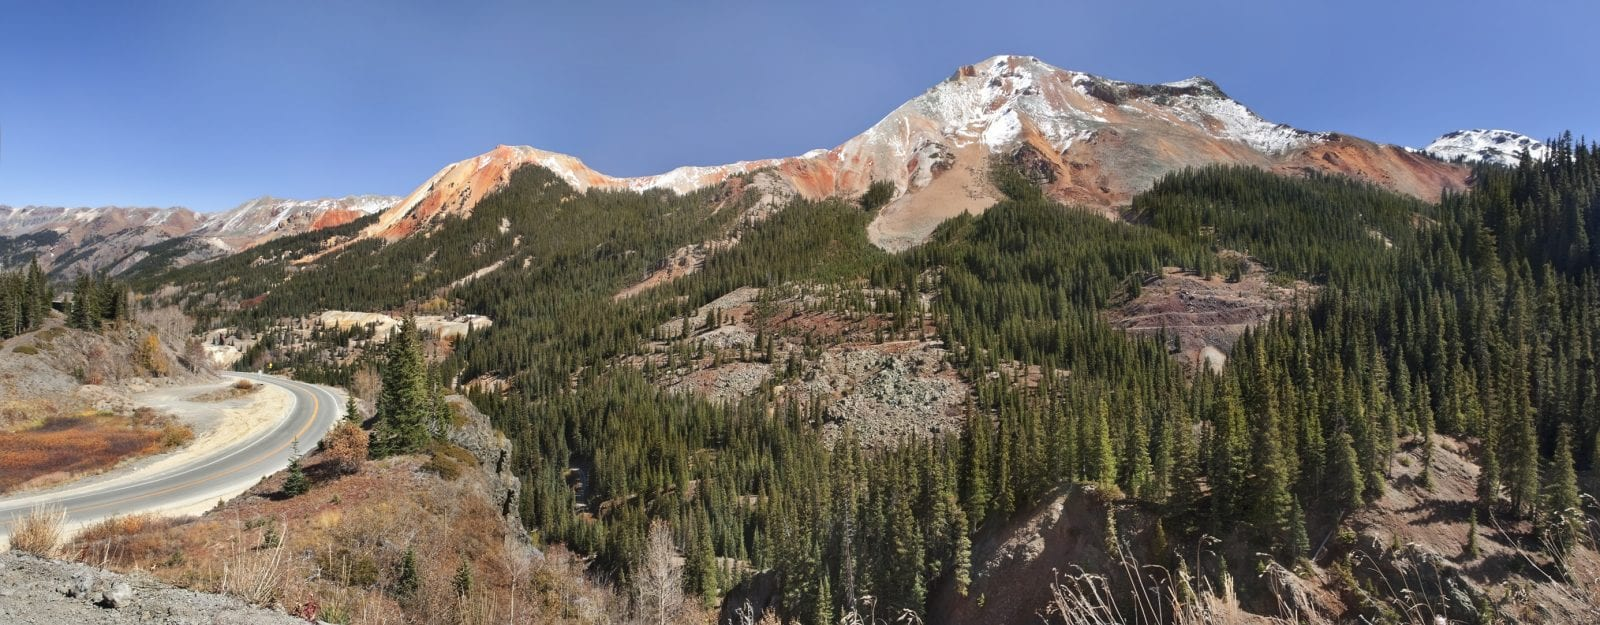 image of red mountain pass